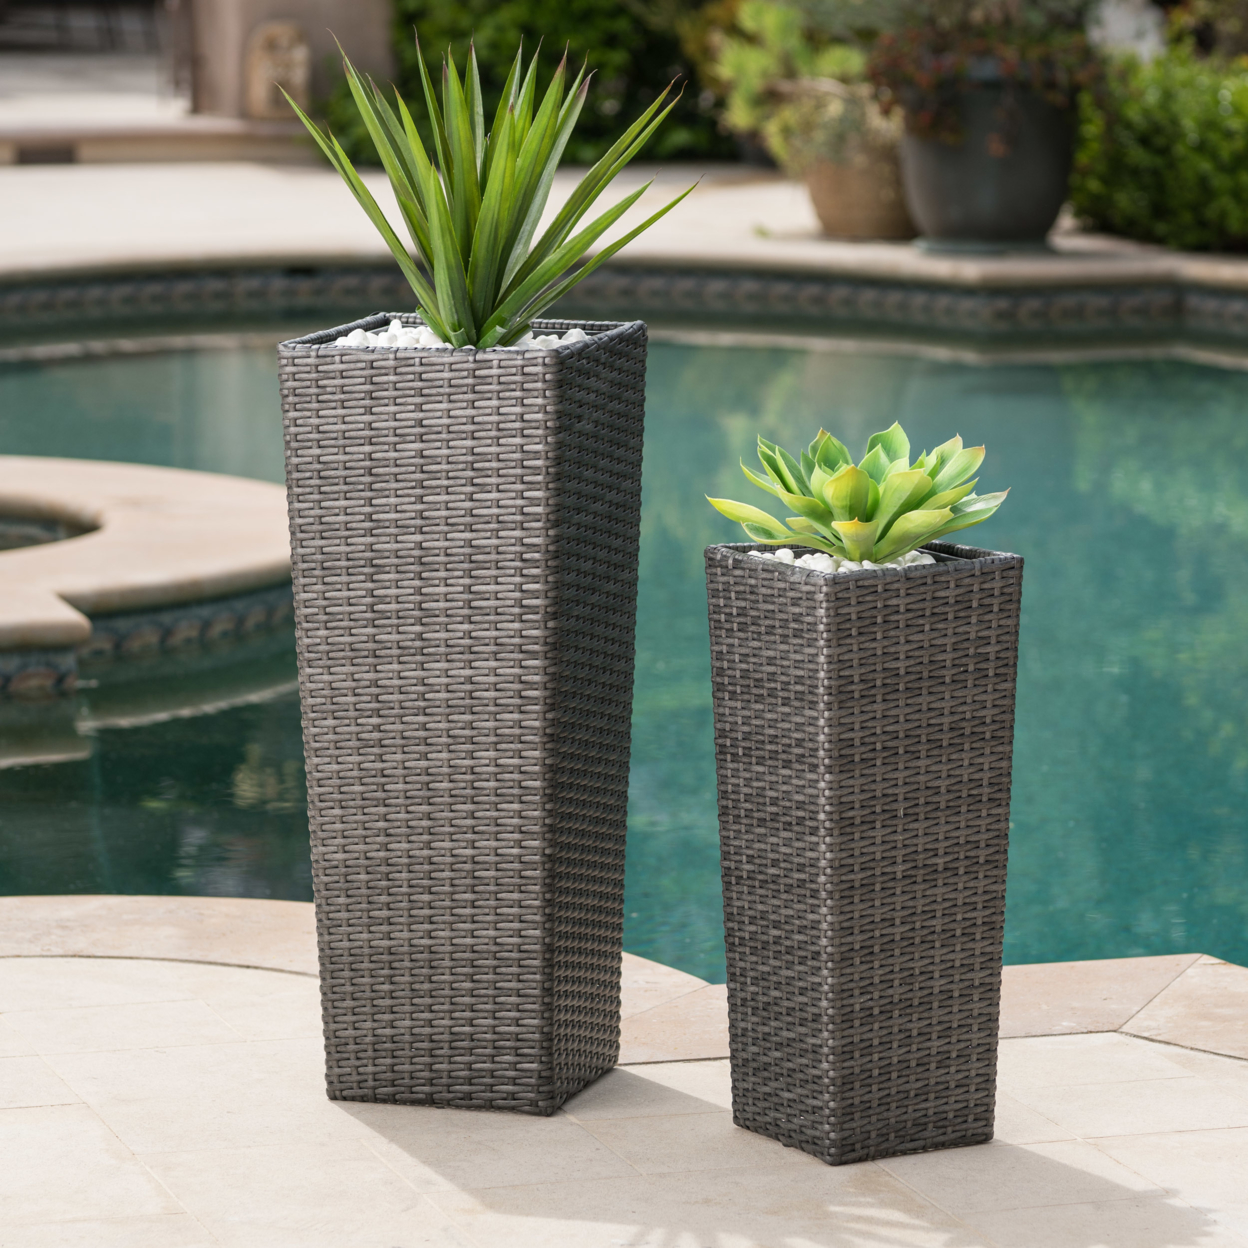 Eden Outdoor Wicker Flower Pots (Set of 2) west of eden